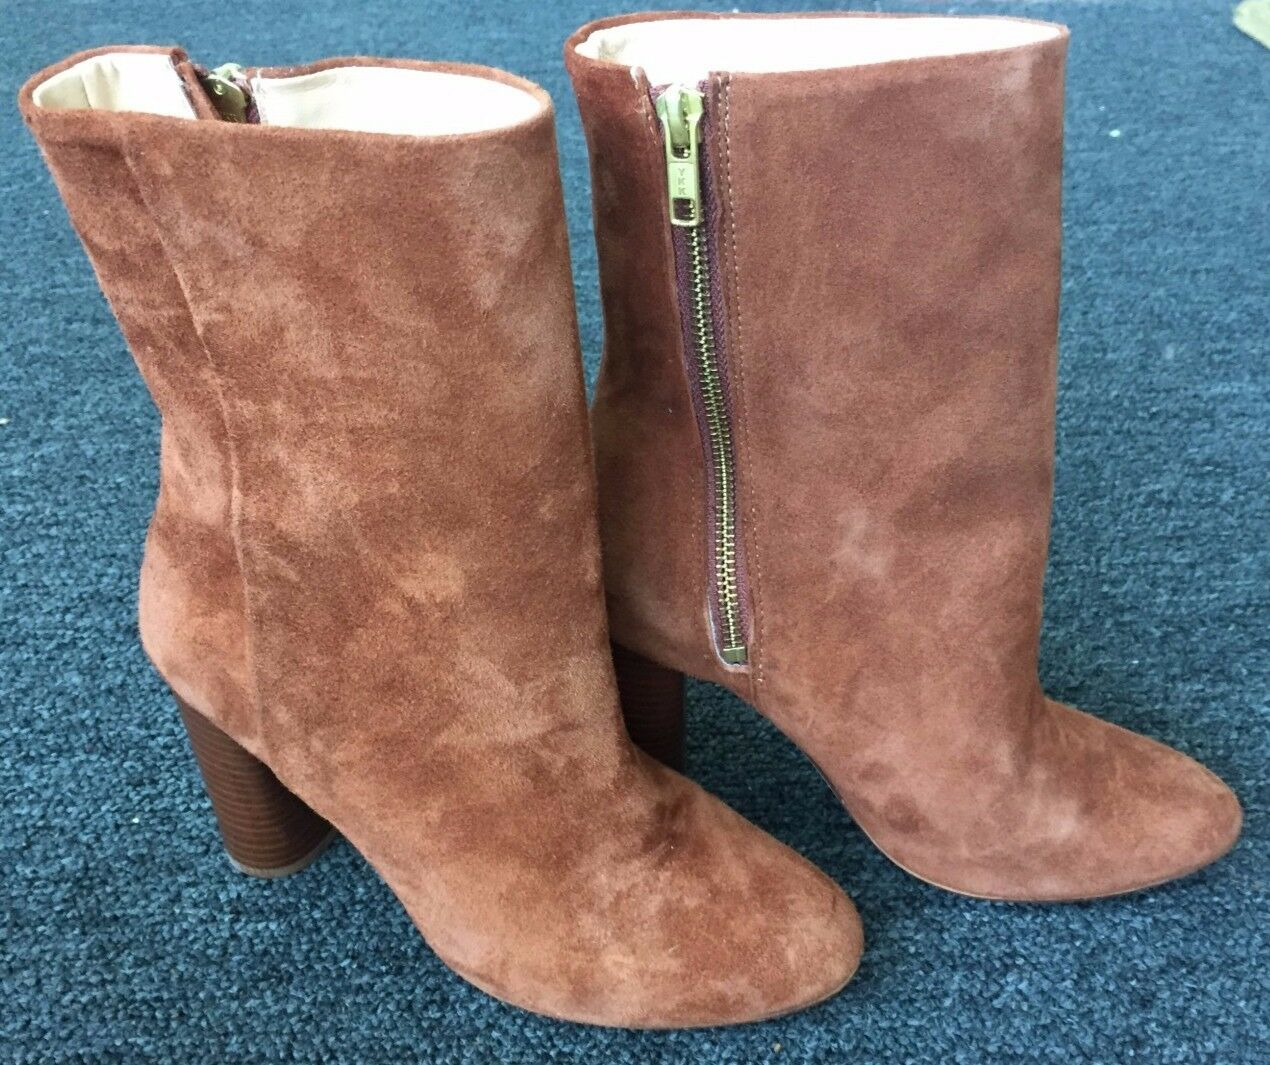 NWT H&M Premium Quality Real suede brown heel boot - Size 6.5